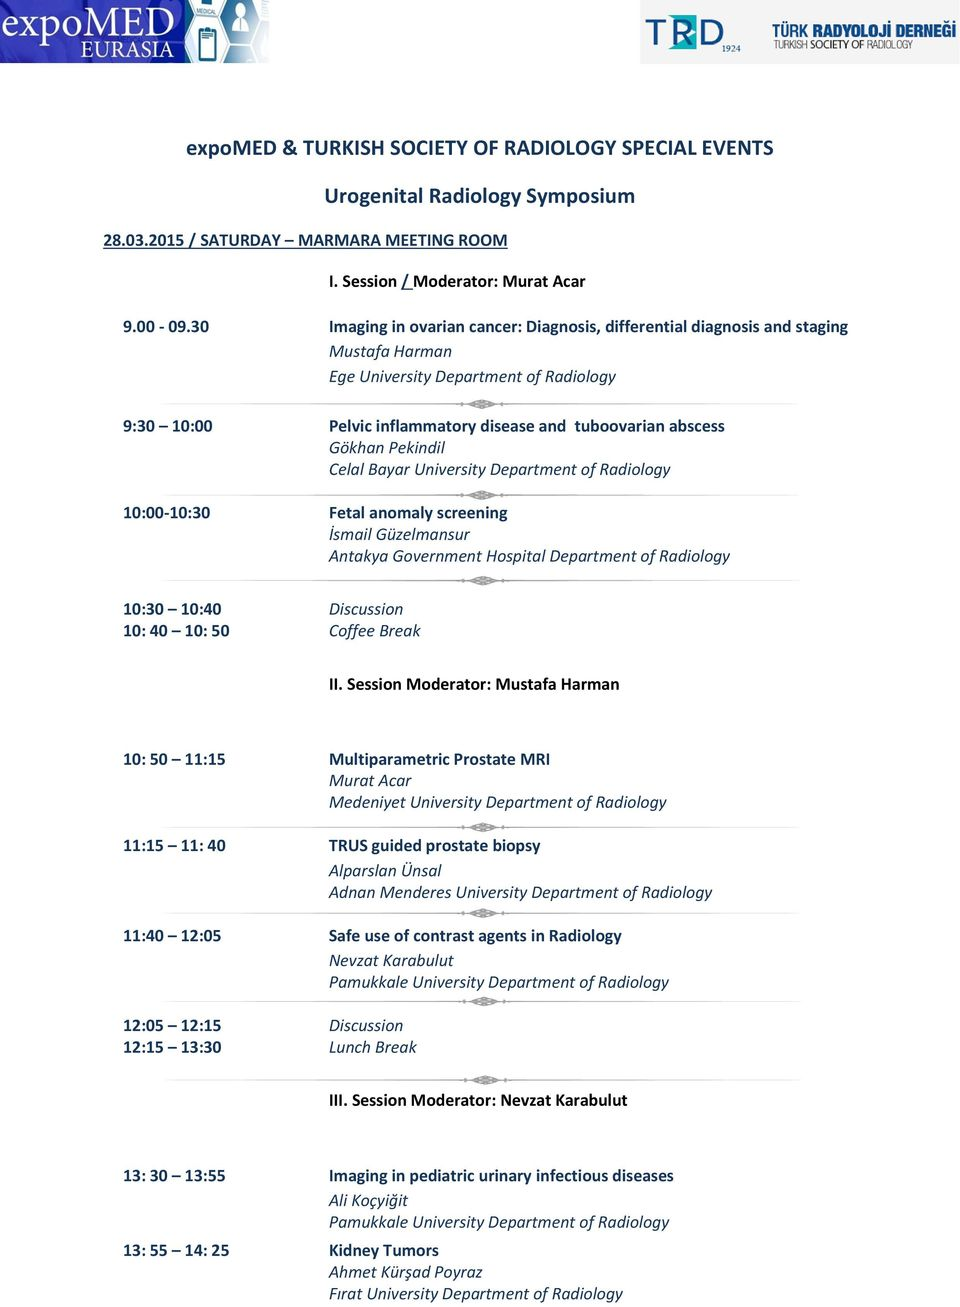 Pekindil Celal Bayar University Department of Radiology 10:00-10:30 Fetal anomaly screening İsmail Güzelmansur Antakya Government Hospital Department of Radiology 10:30 10:40 10: 40 10: 50 Discussion